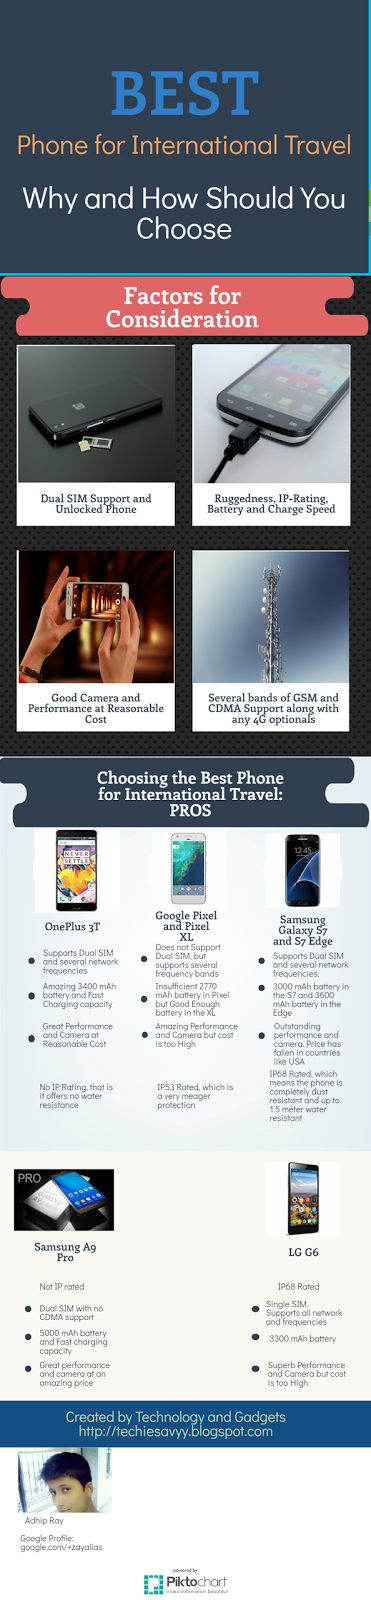 Best Phone for International Travelling